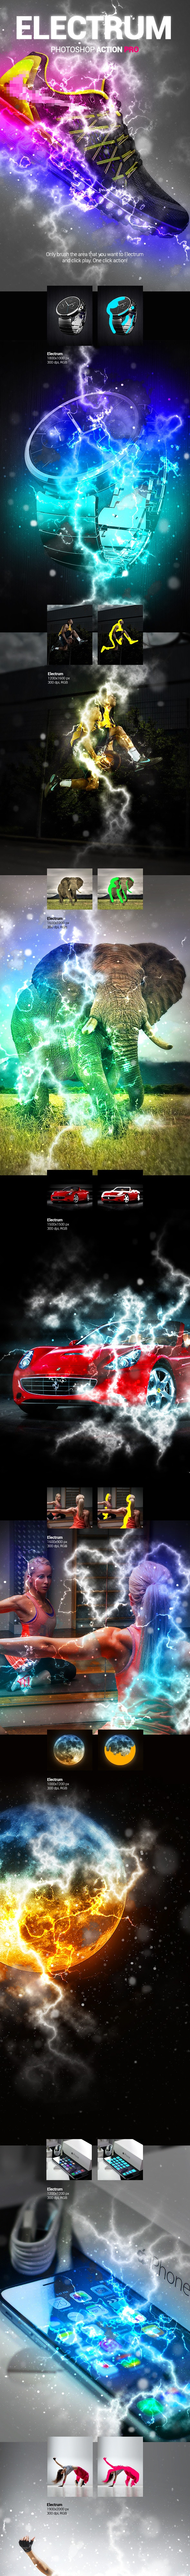 Electric Lightning - Electrum - Photoshop Action - Photo Effects Actions